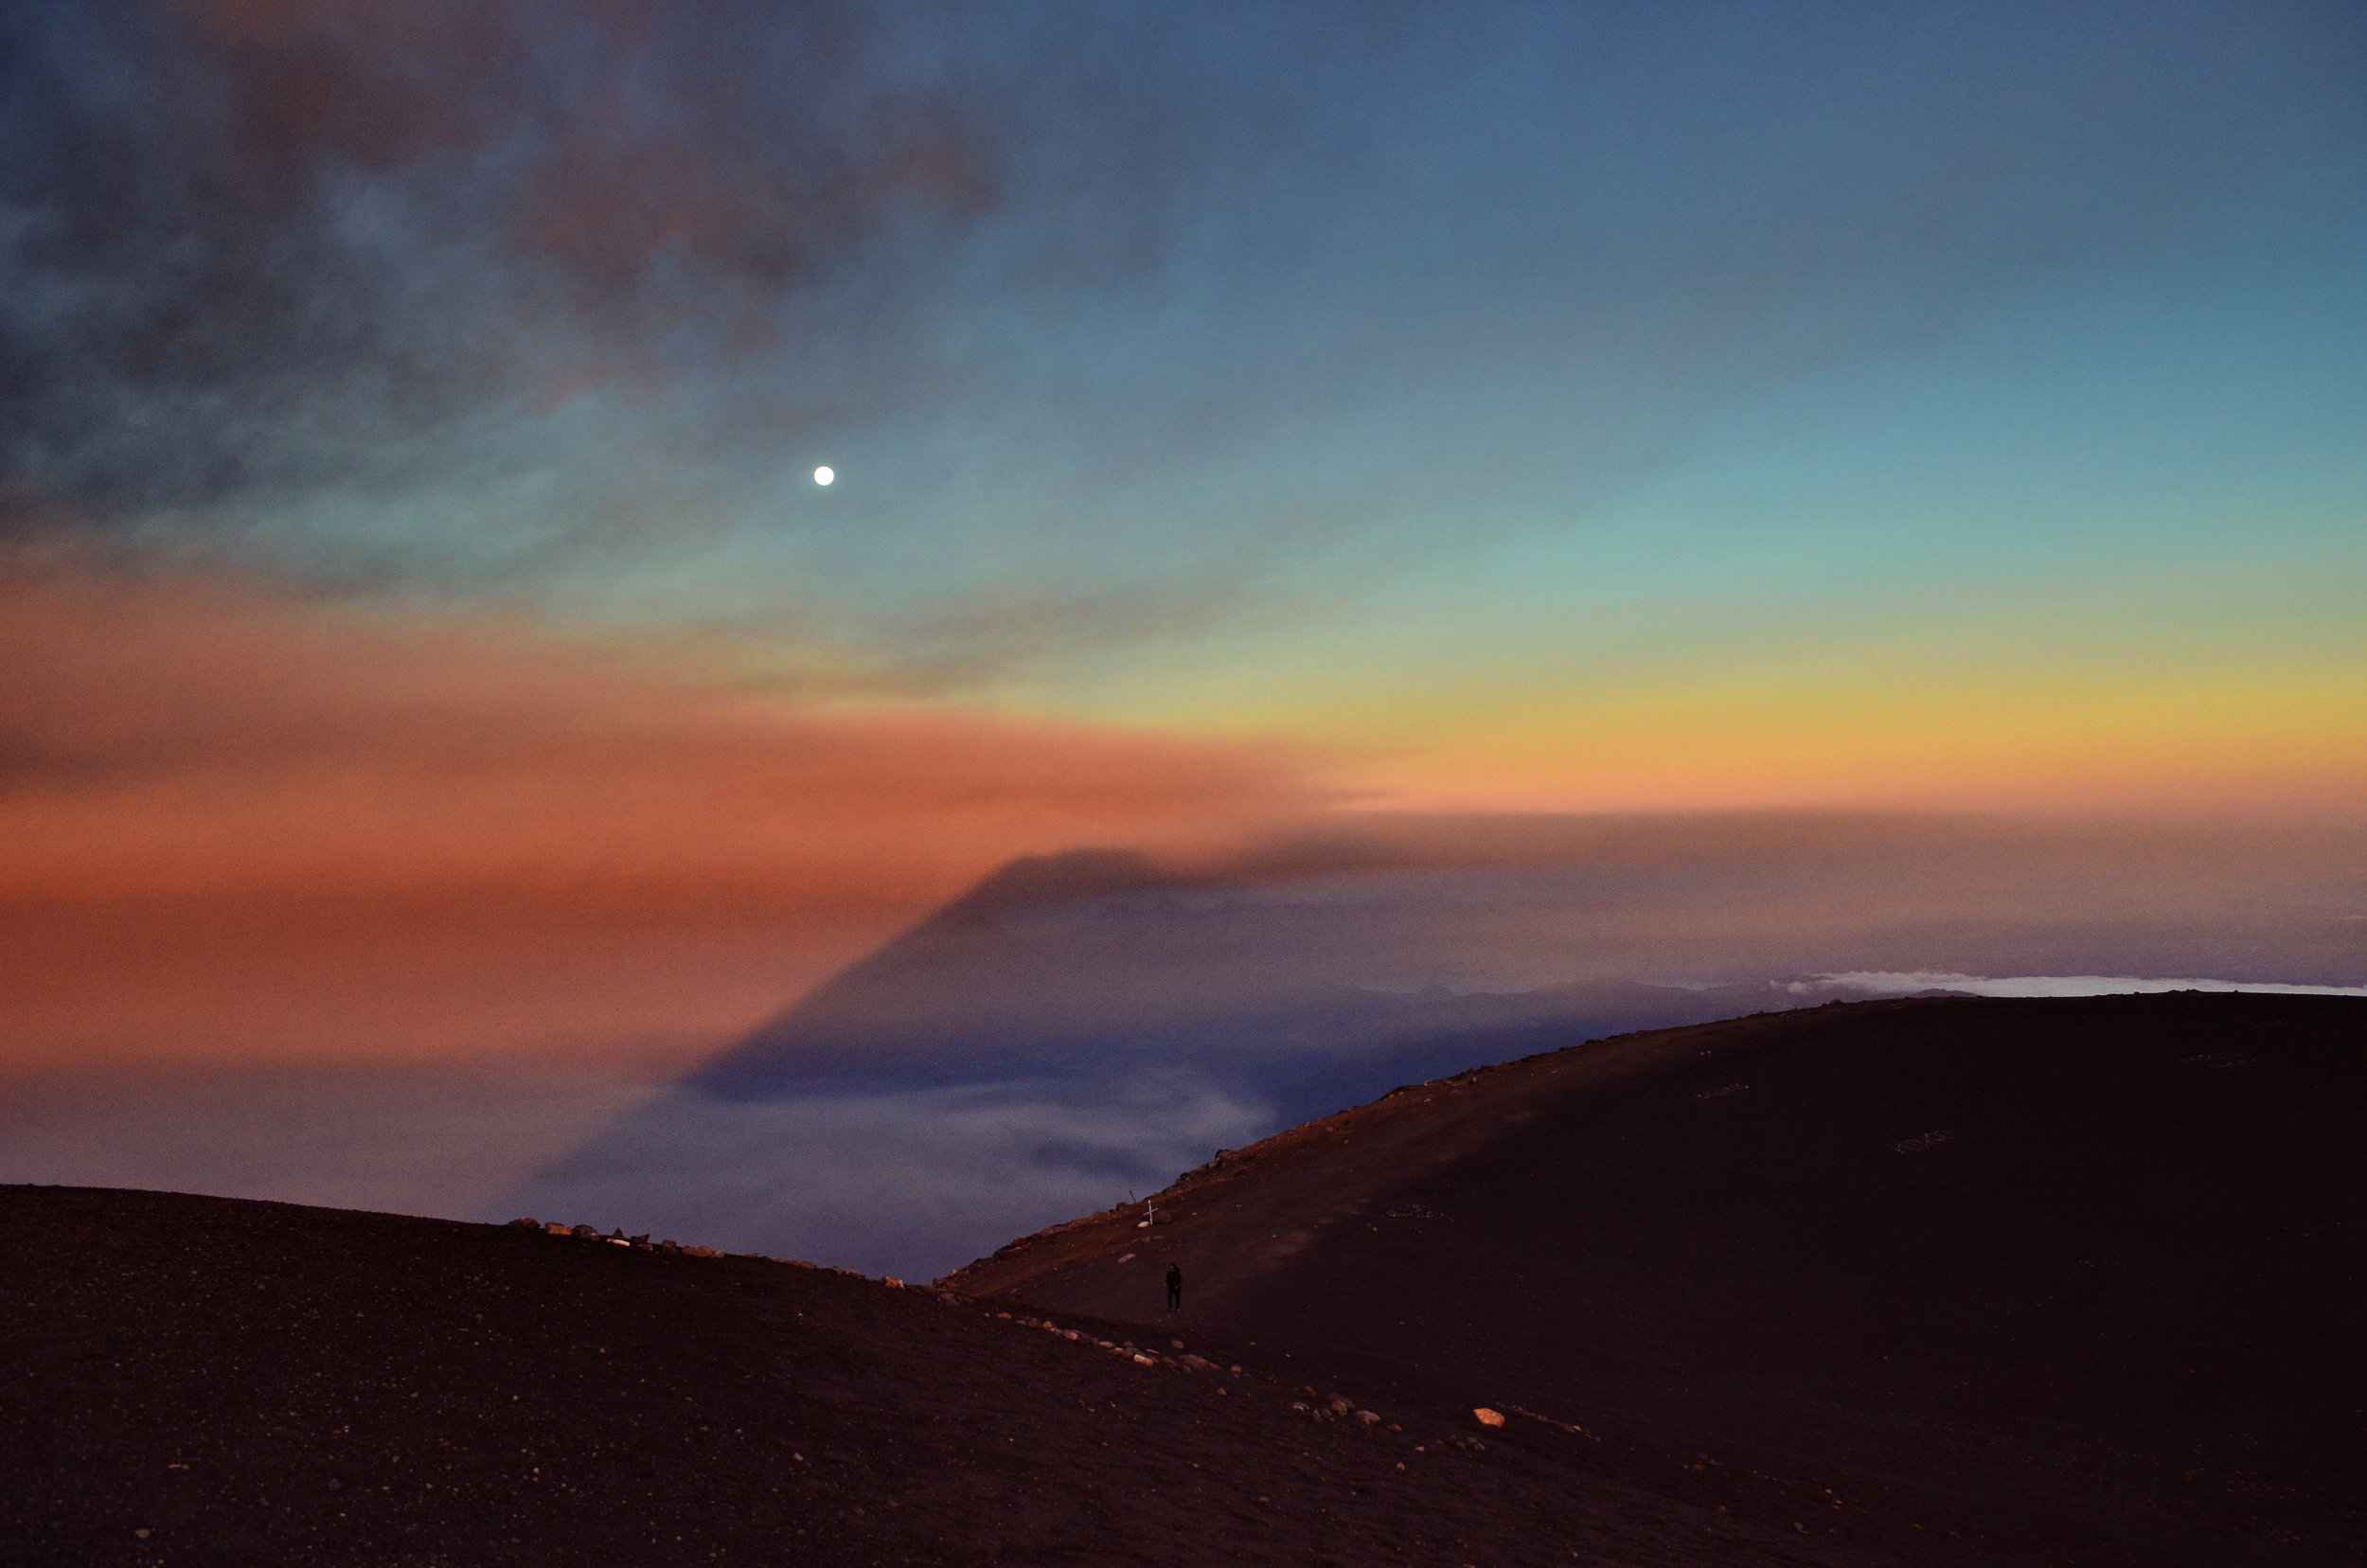 A full moon hovers over the alien landscape at the summit of Acatenango